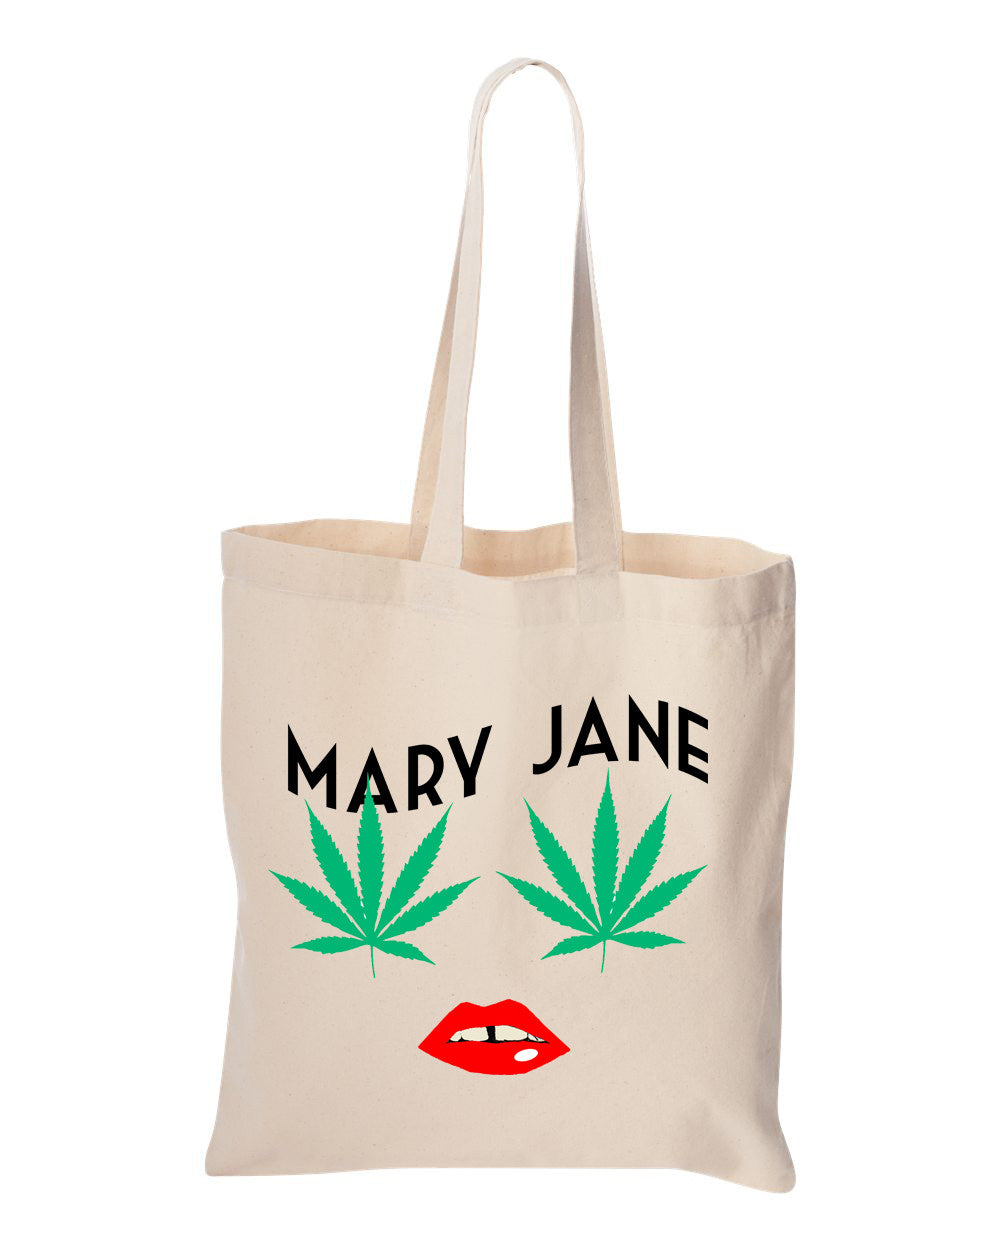 MARY JANE TOTE BAG